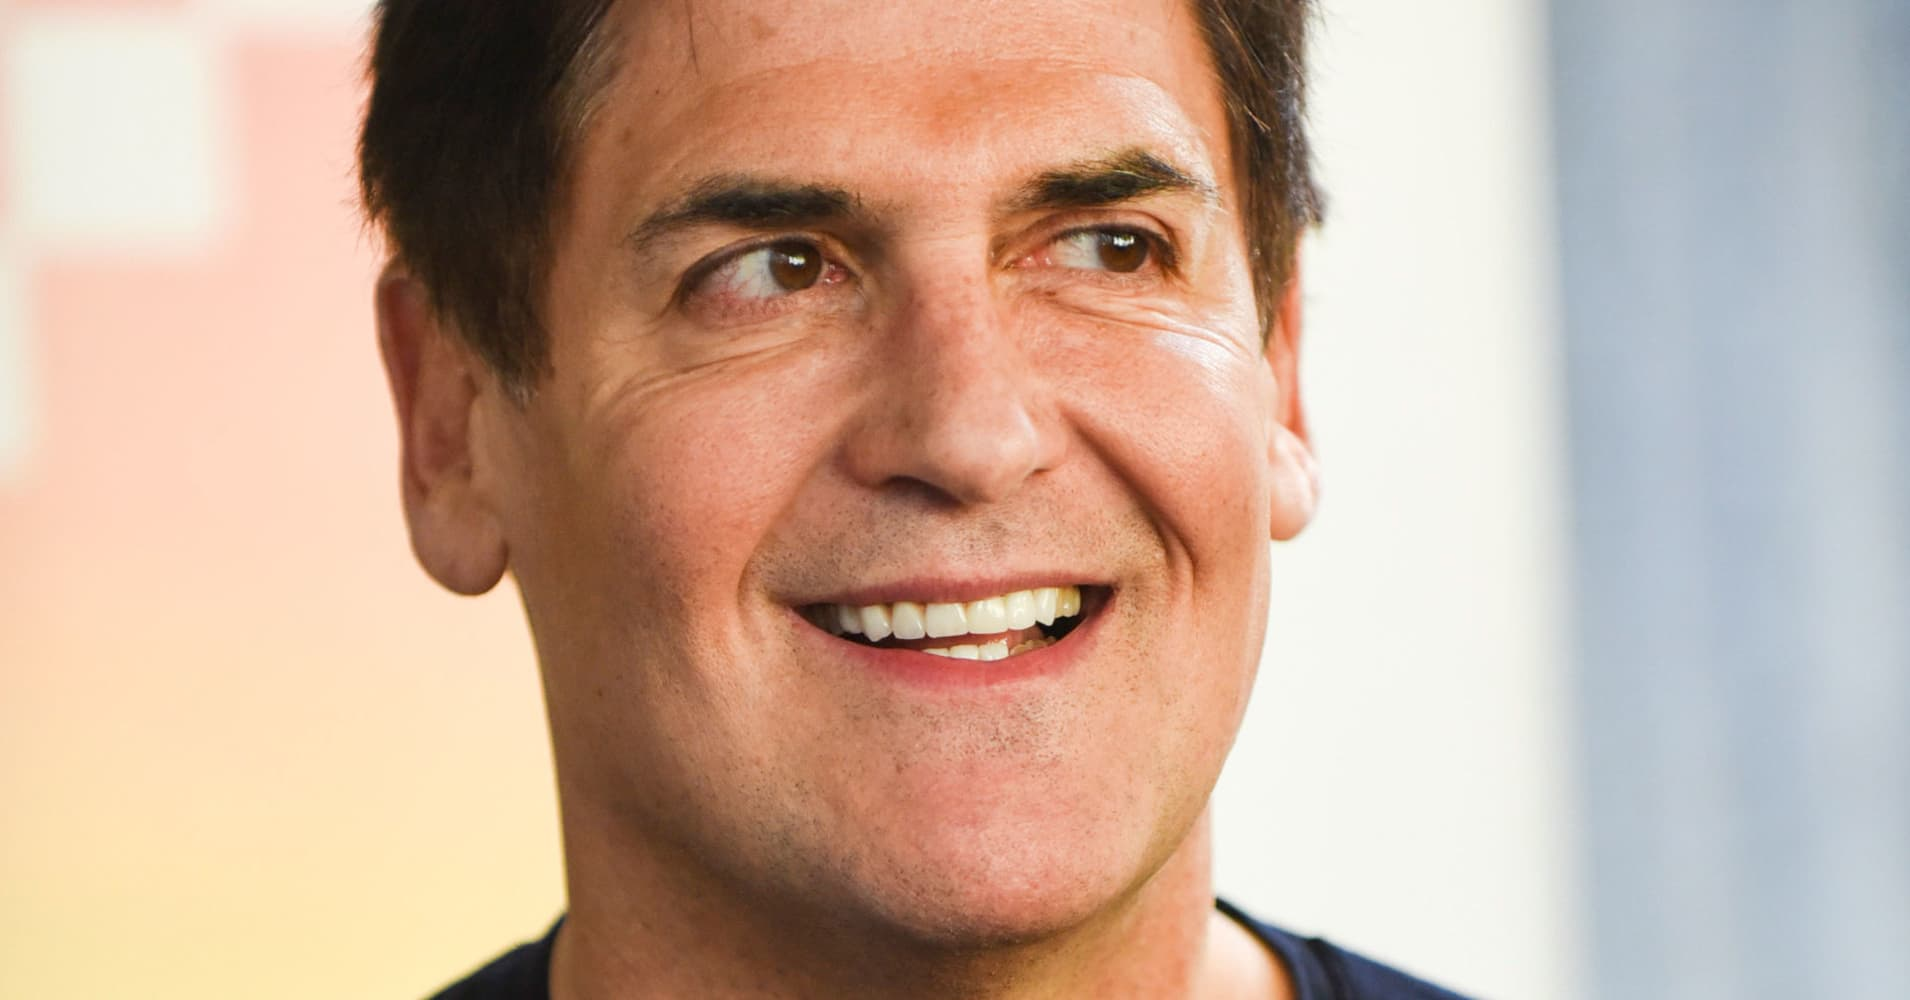 Mark Cuban says this side hustle as a 12-year-old taught him 'as much about business as any class'